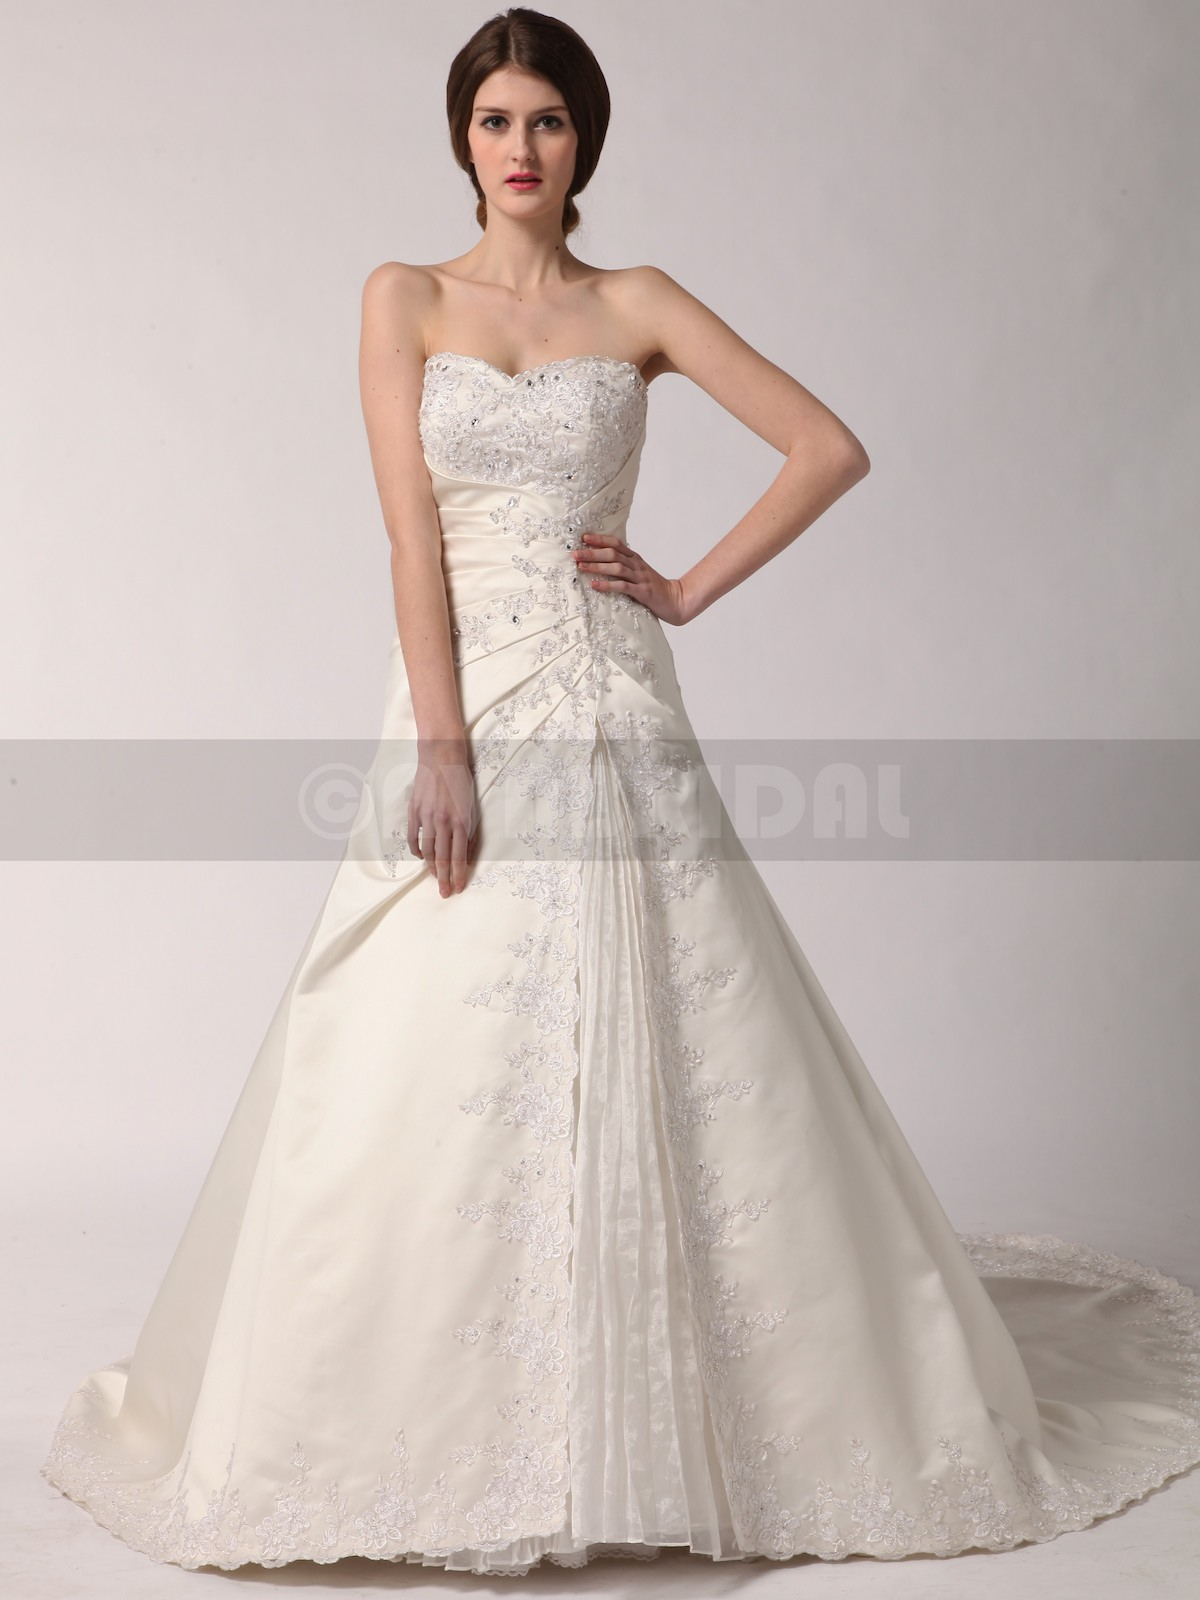 Winter Wedding Dress - Alison - Front